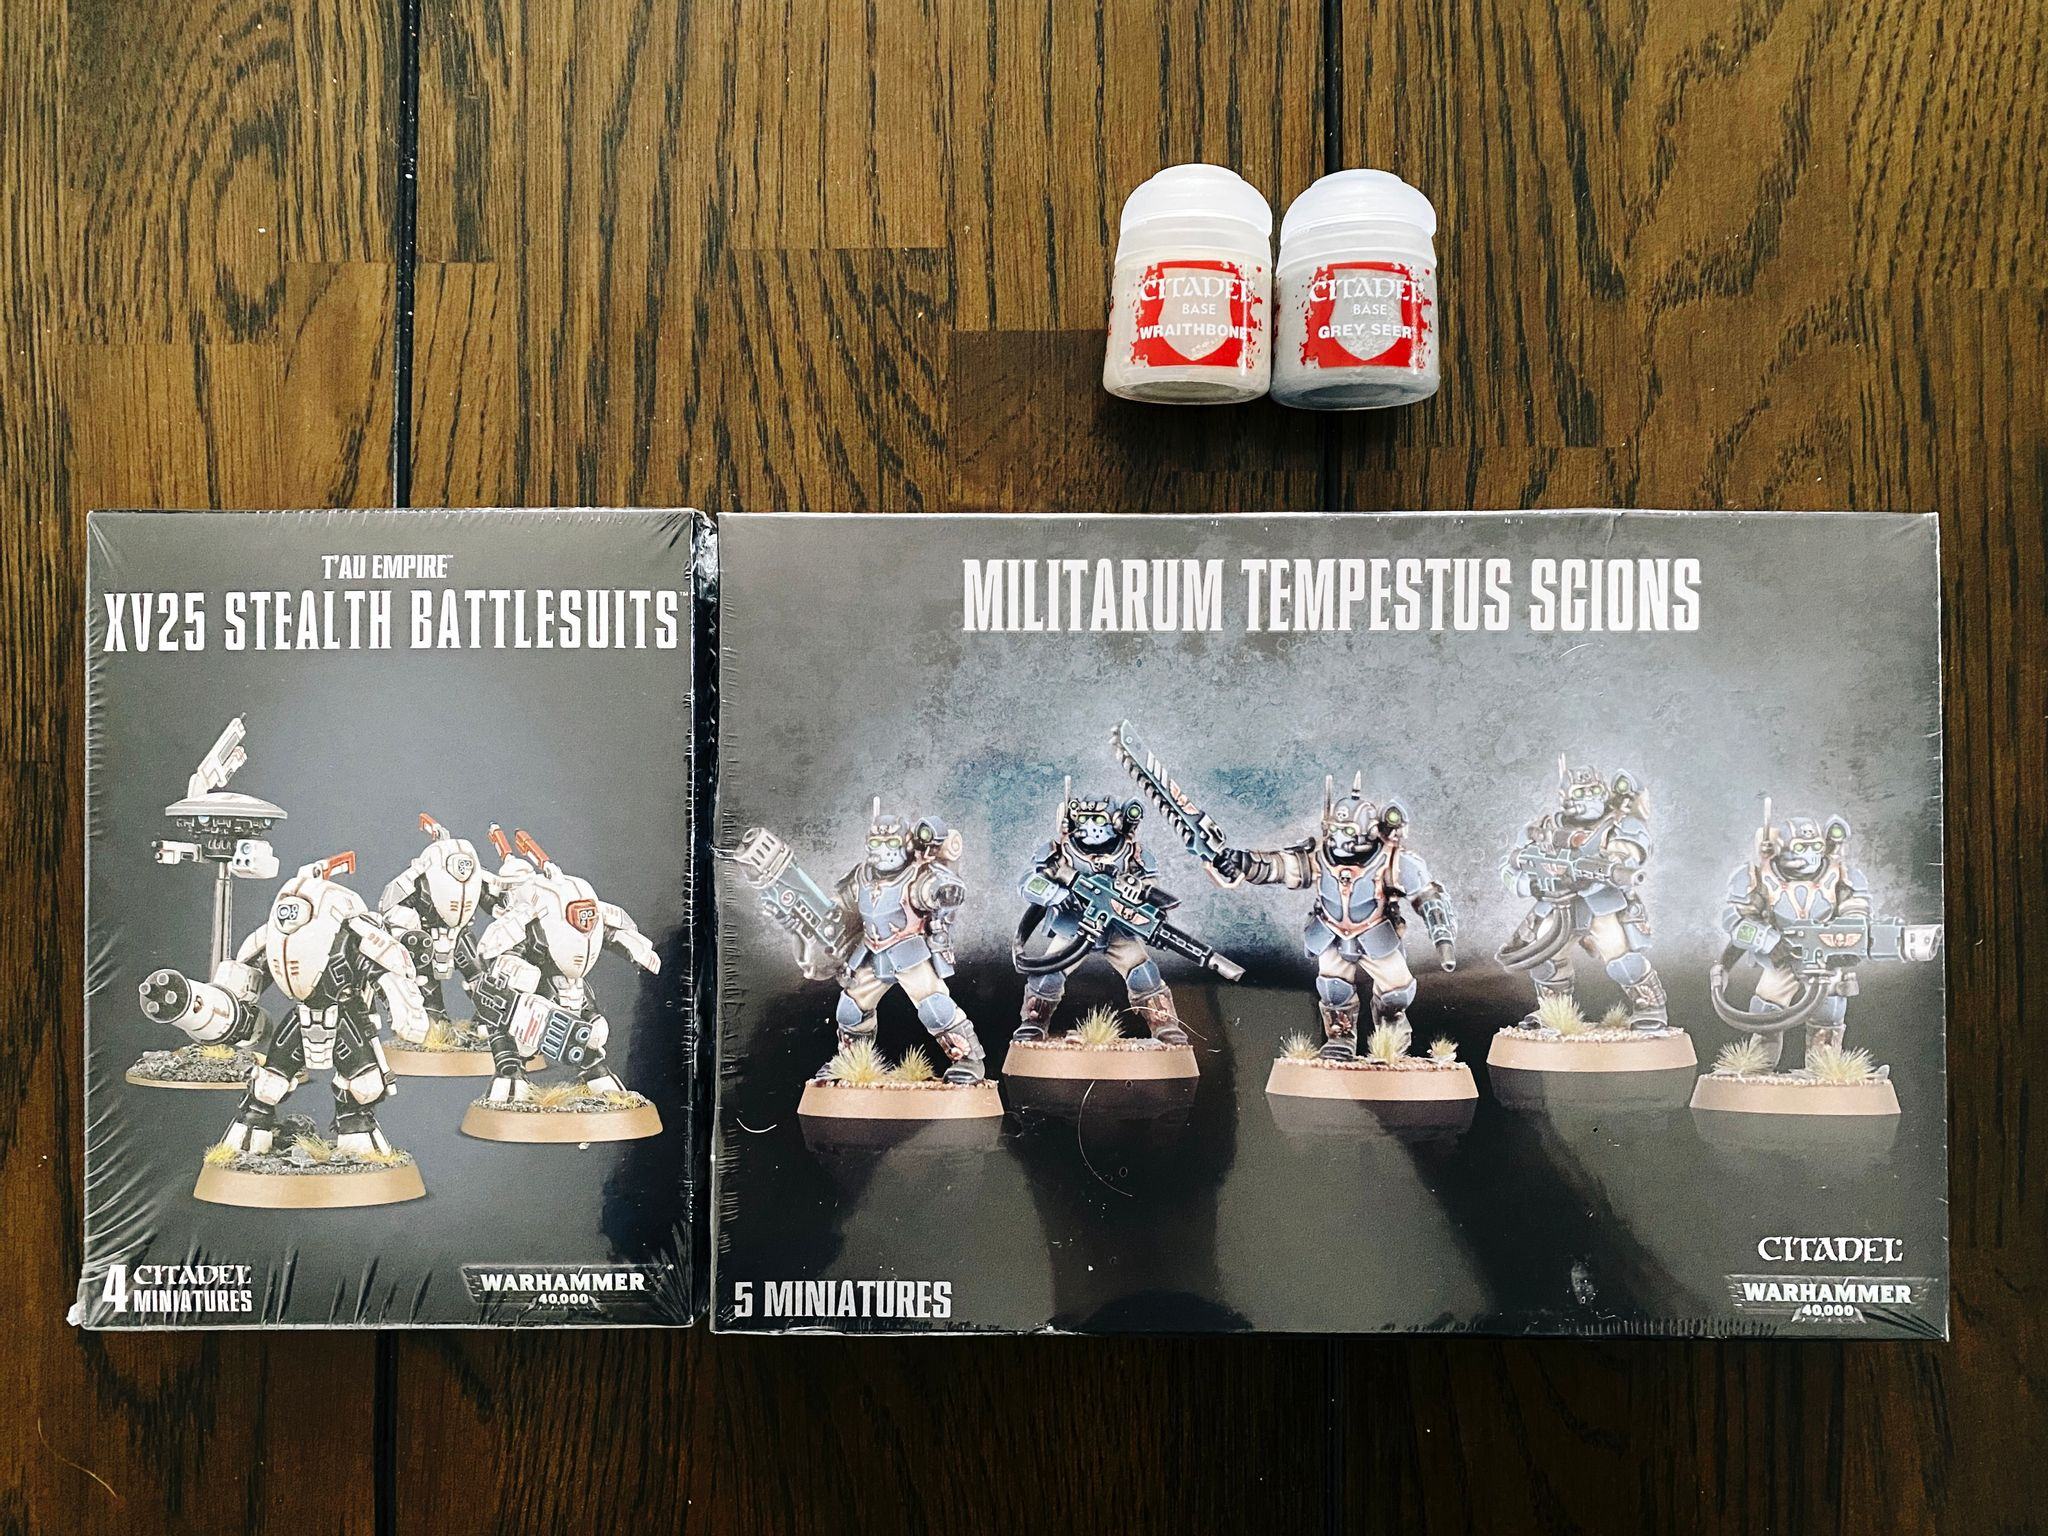 A photo of two pots of miniature paints, a box of three Tau XV25 Stealth Battlesuits, and a box of five Militarum Tempestus Scions.